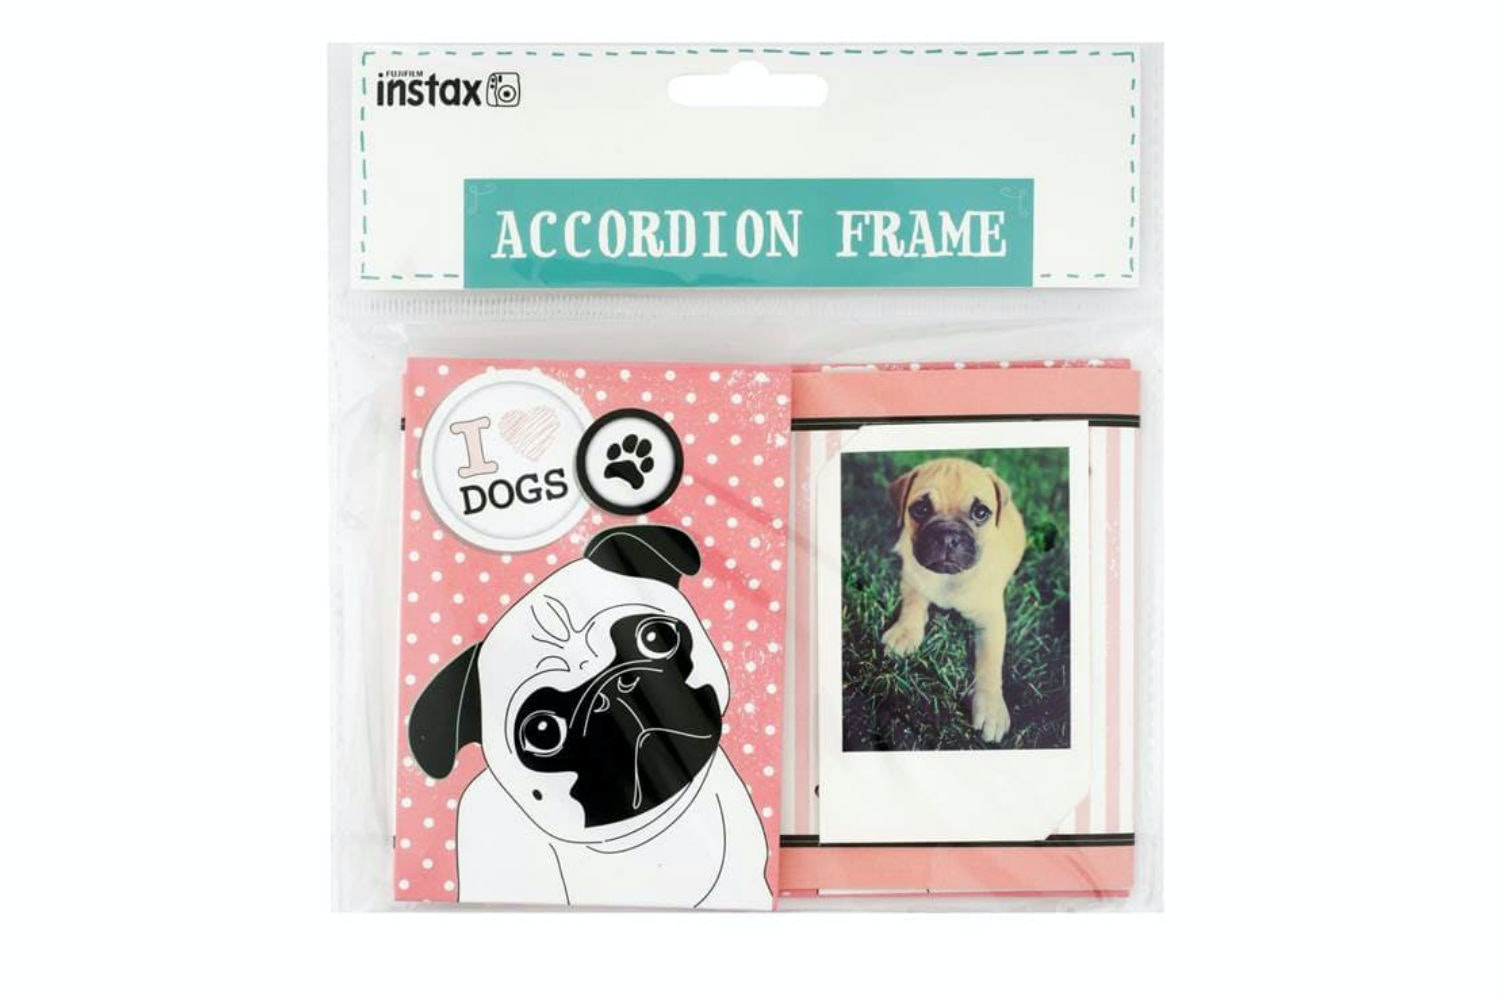 Instax Accordion Frame | Dog